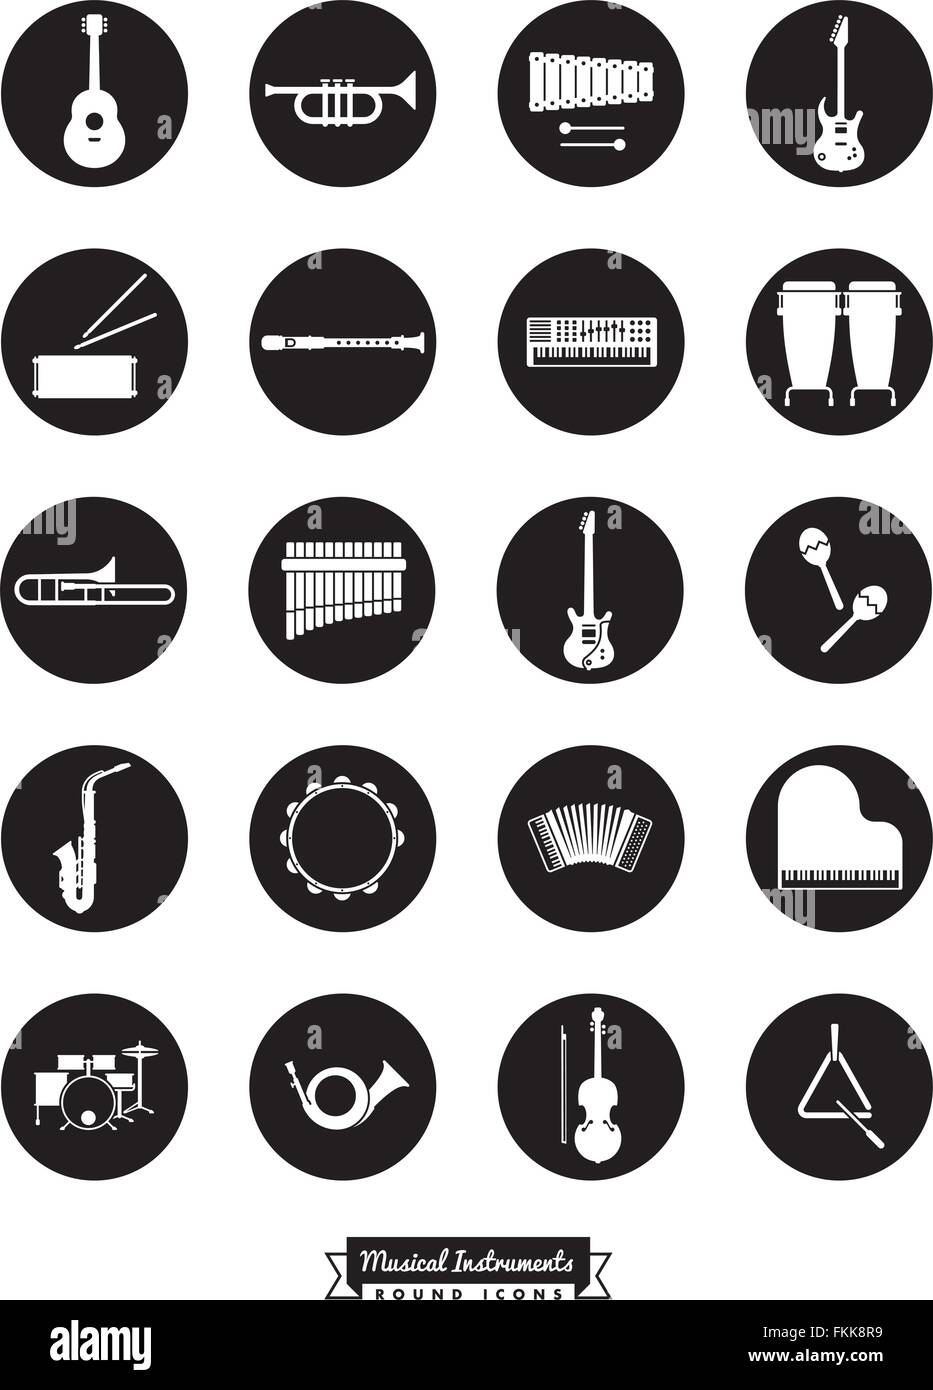 Collection Of 20 Musical Instruments Symbols Negative In Black